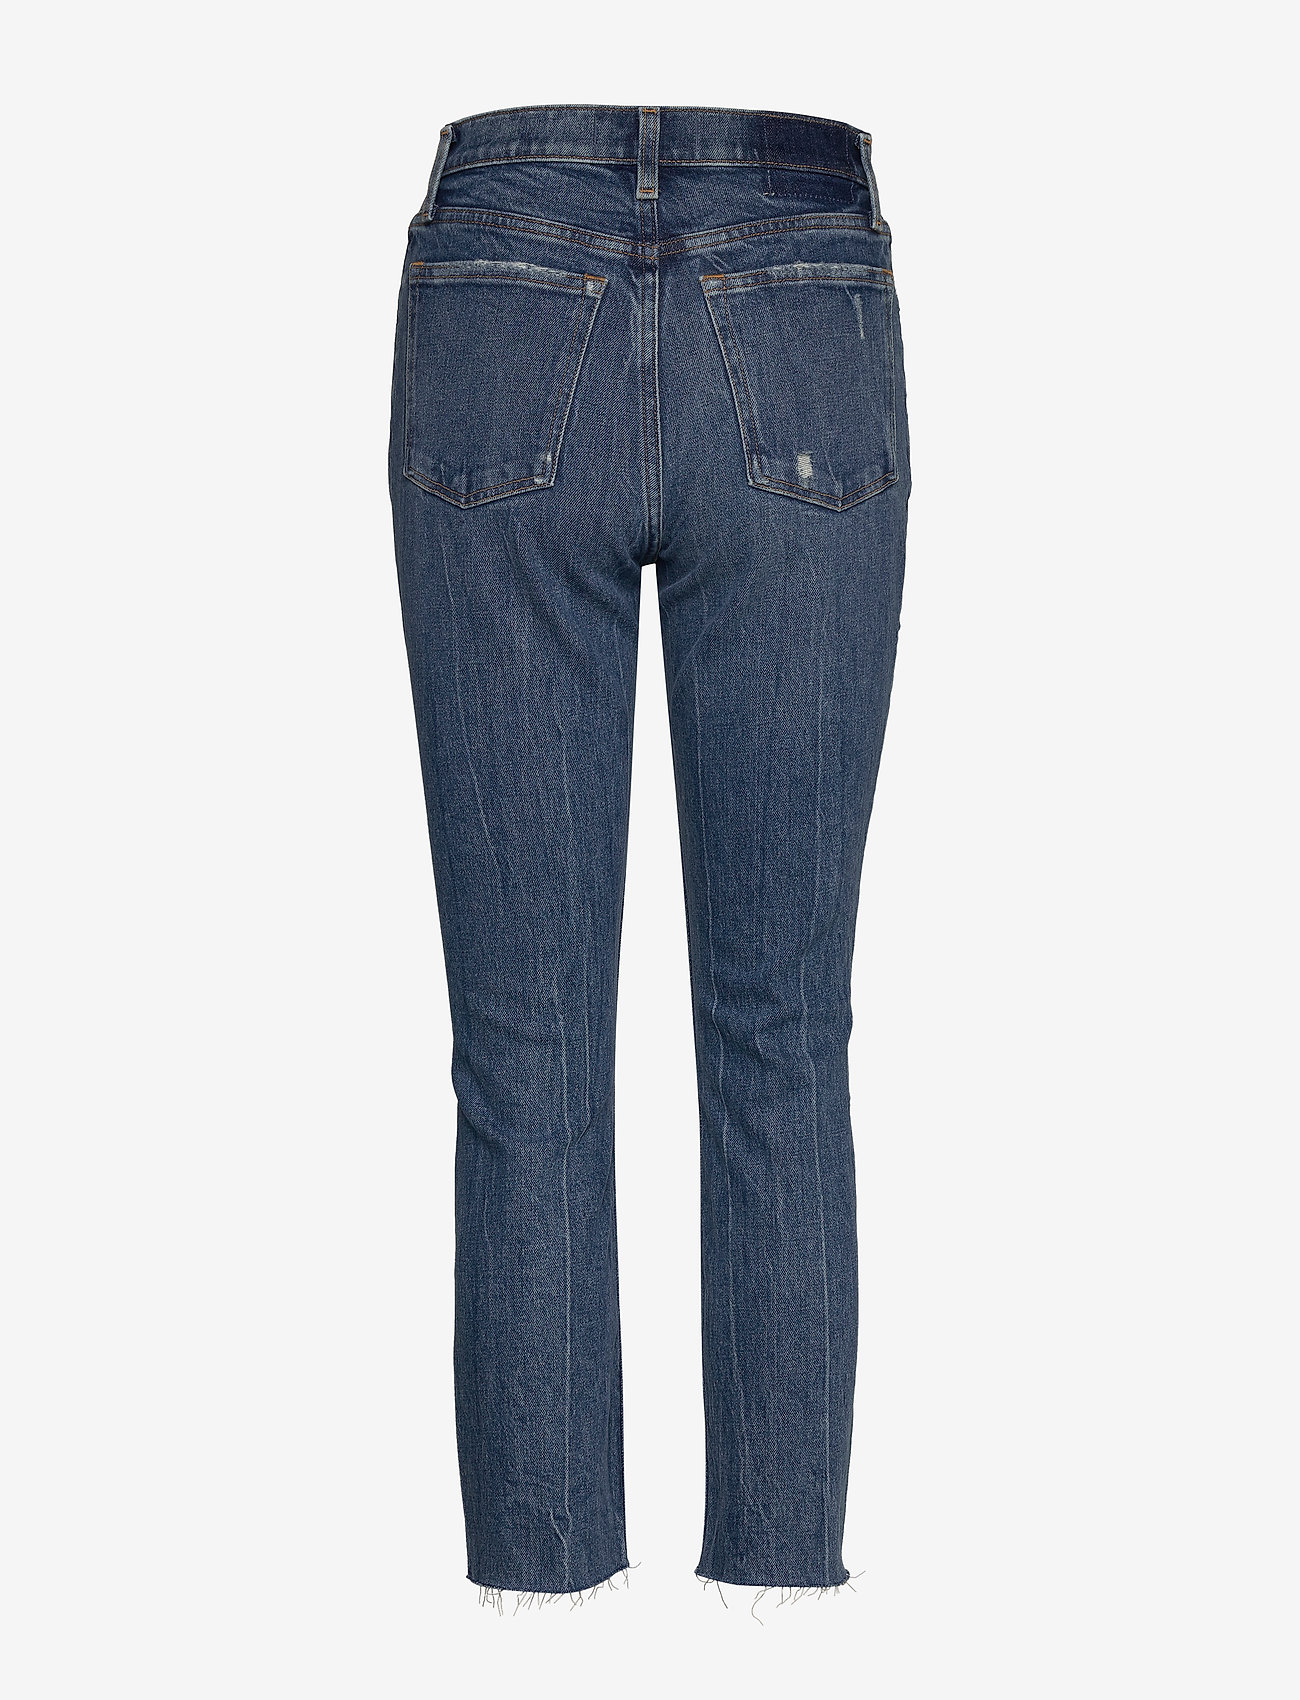 Abercrombie & Fitch - Mom Jeans - mom jeans - dark destroy - 1